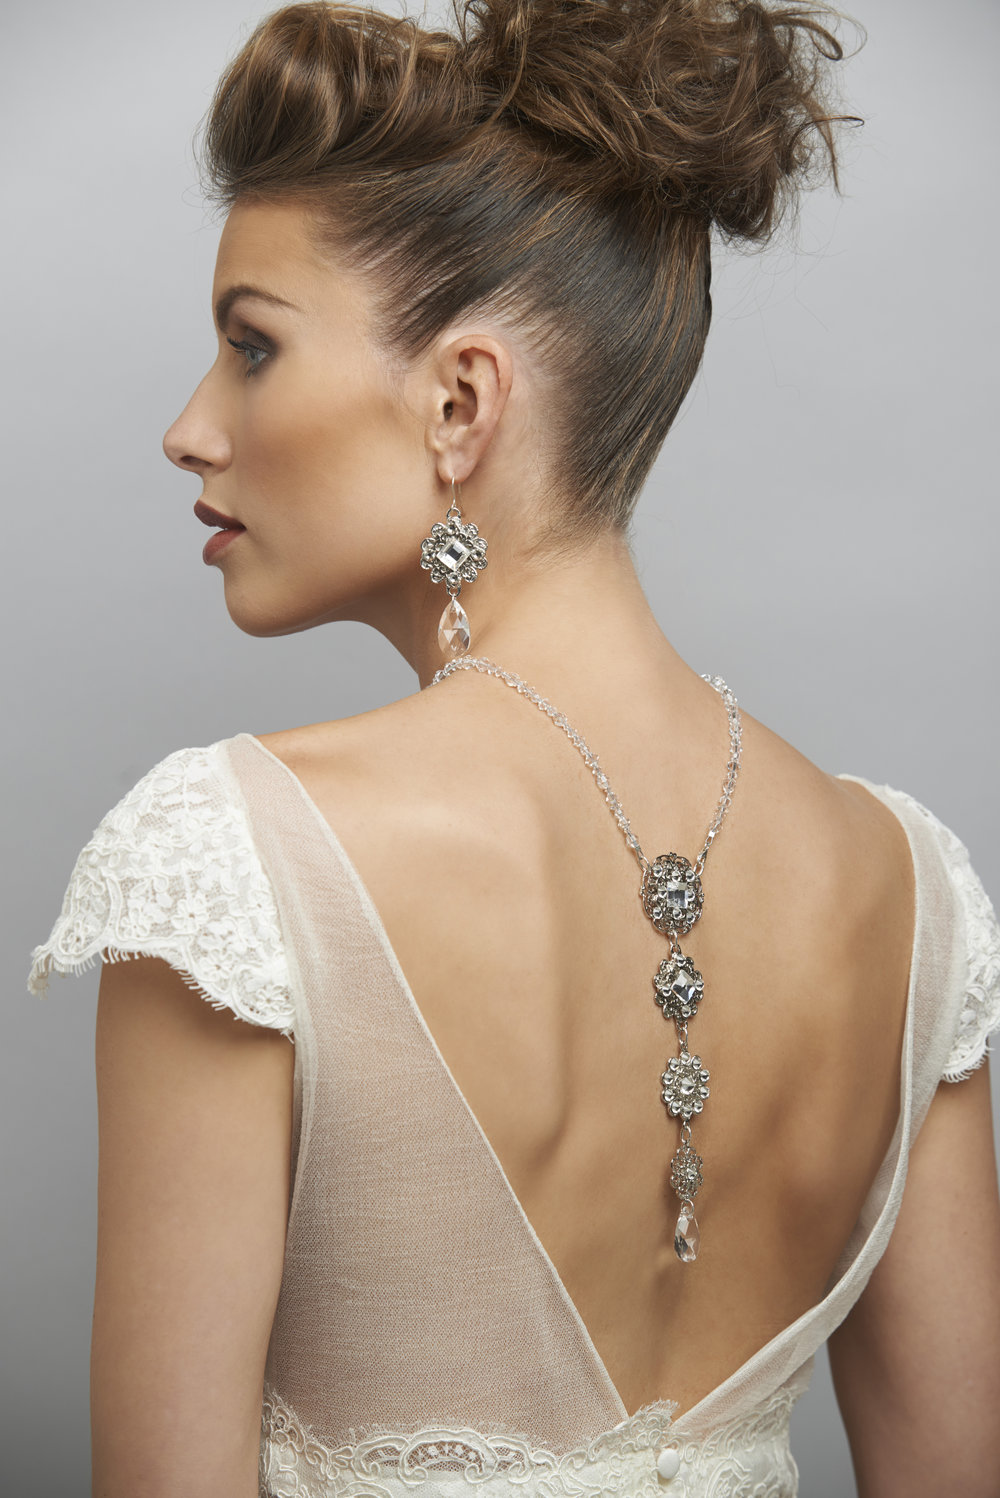 Gill Clement Jewellery August 140420 2.jpg